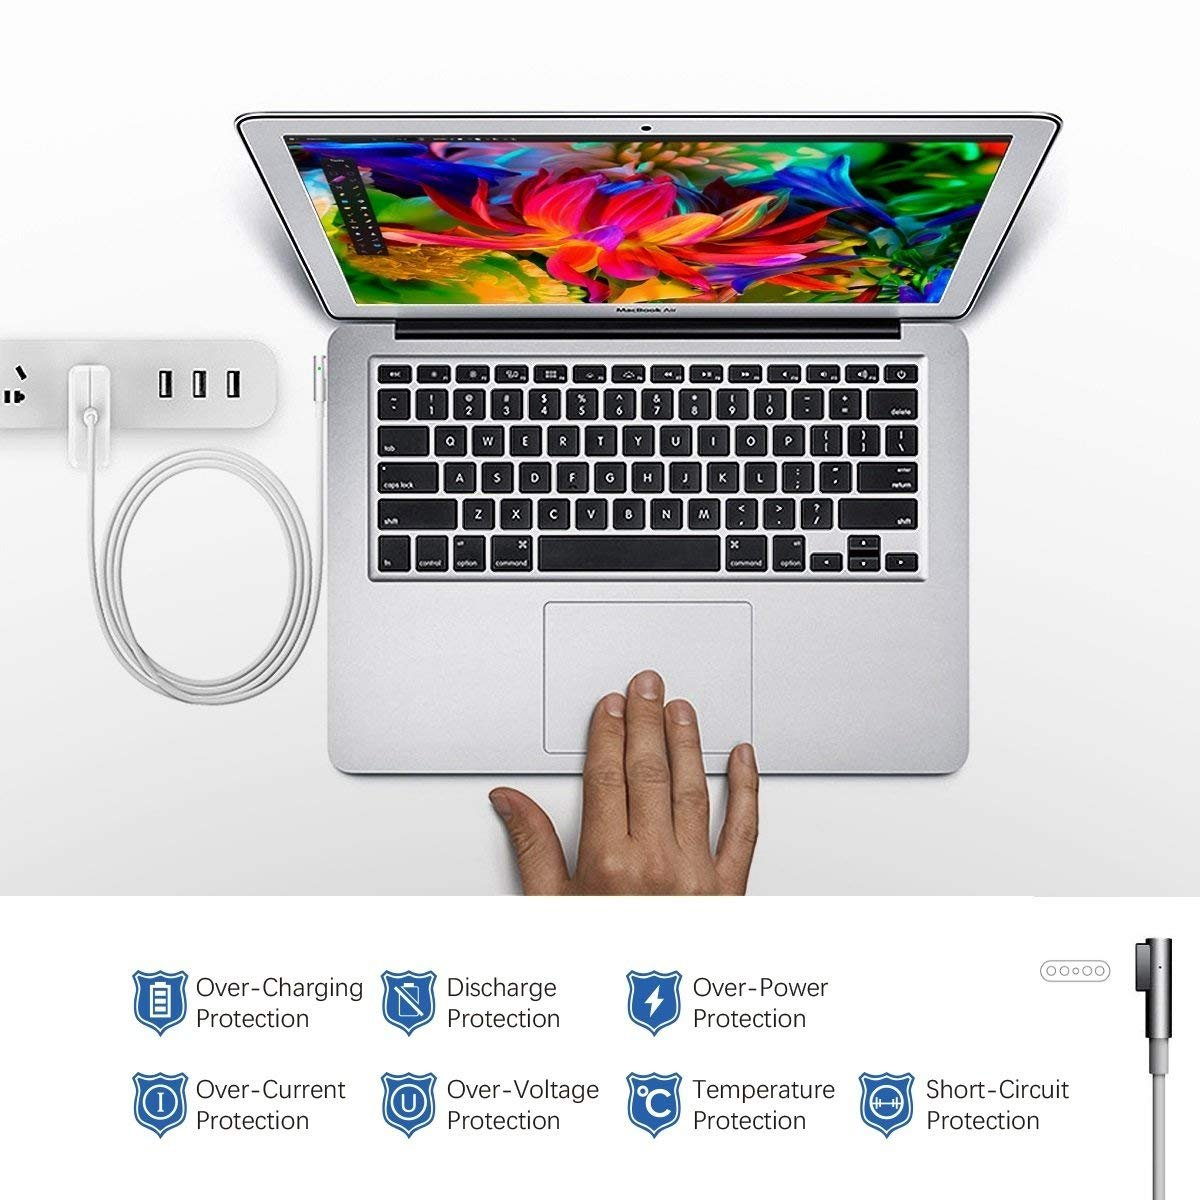 QIANXIANG Laptop Charger,L Tip/Shape/Style Magnetic Connect 60W AC Replacement Power Adapter,Laptop Charger Compatible MacBook Pro 13 inch Retina A1181/A1278/A1184/A1330(2009/2010/2011/2012)